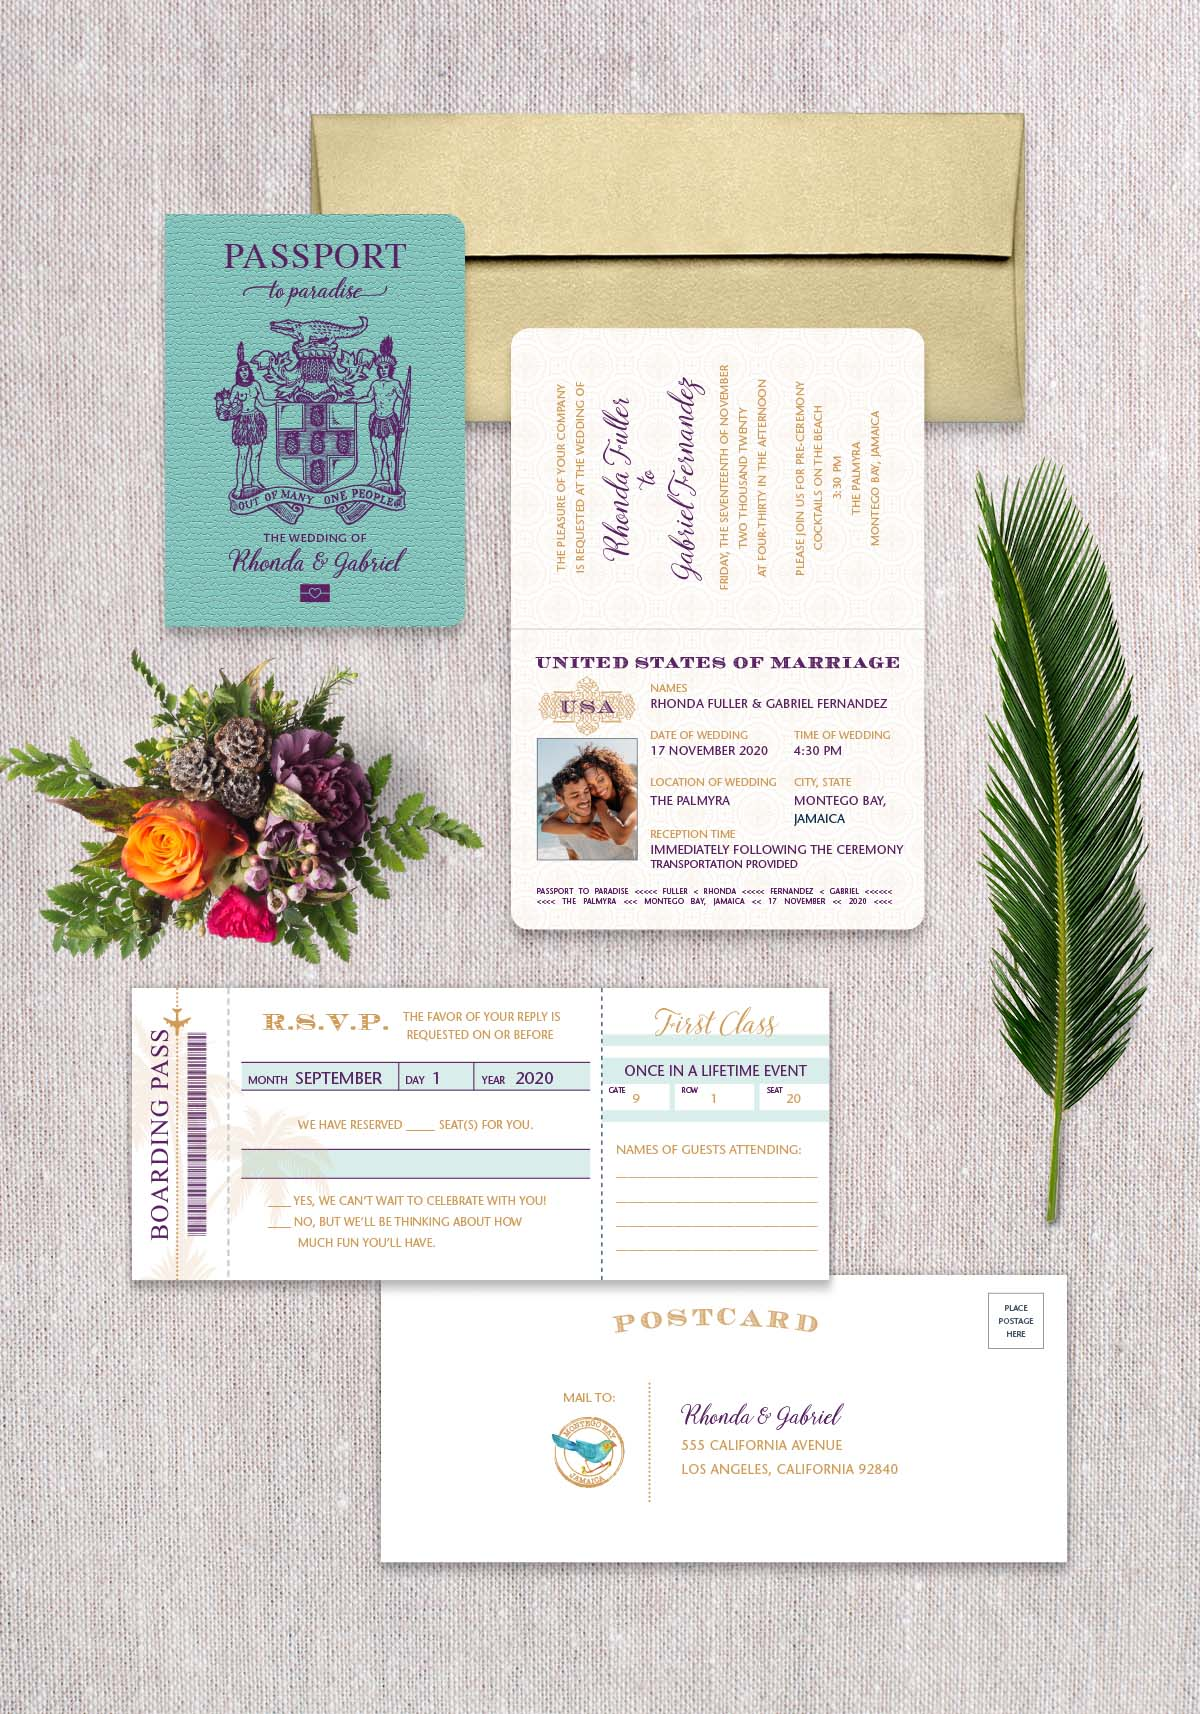 Jamaica Passport Invitation